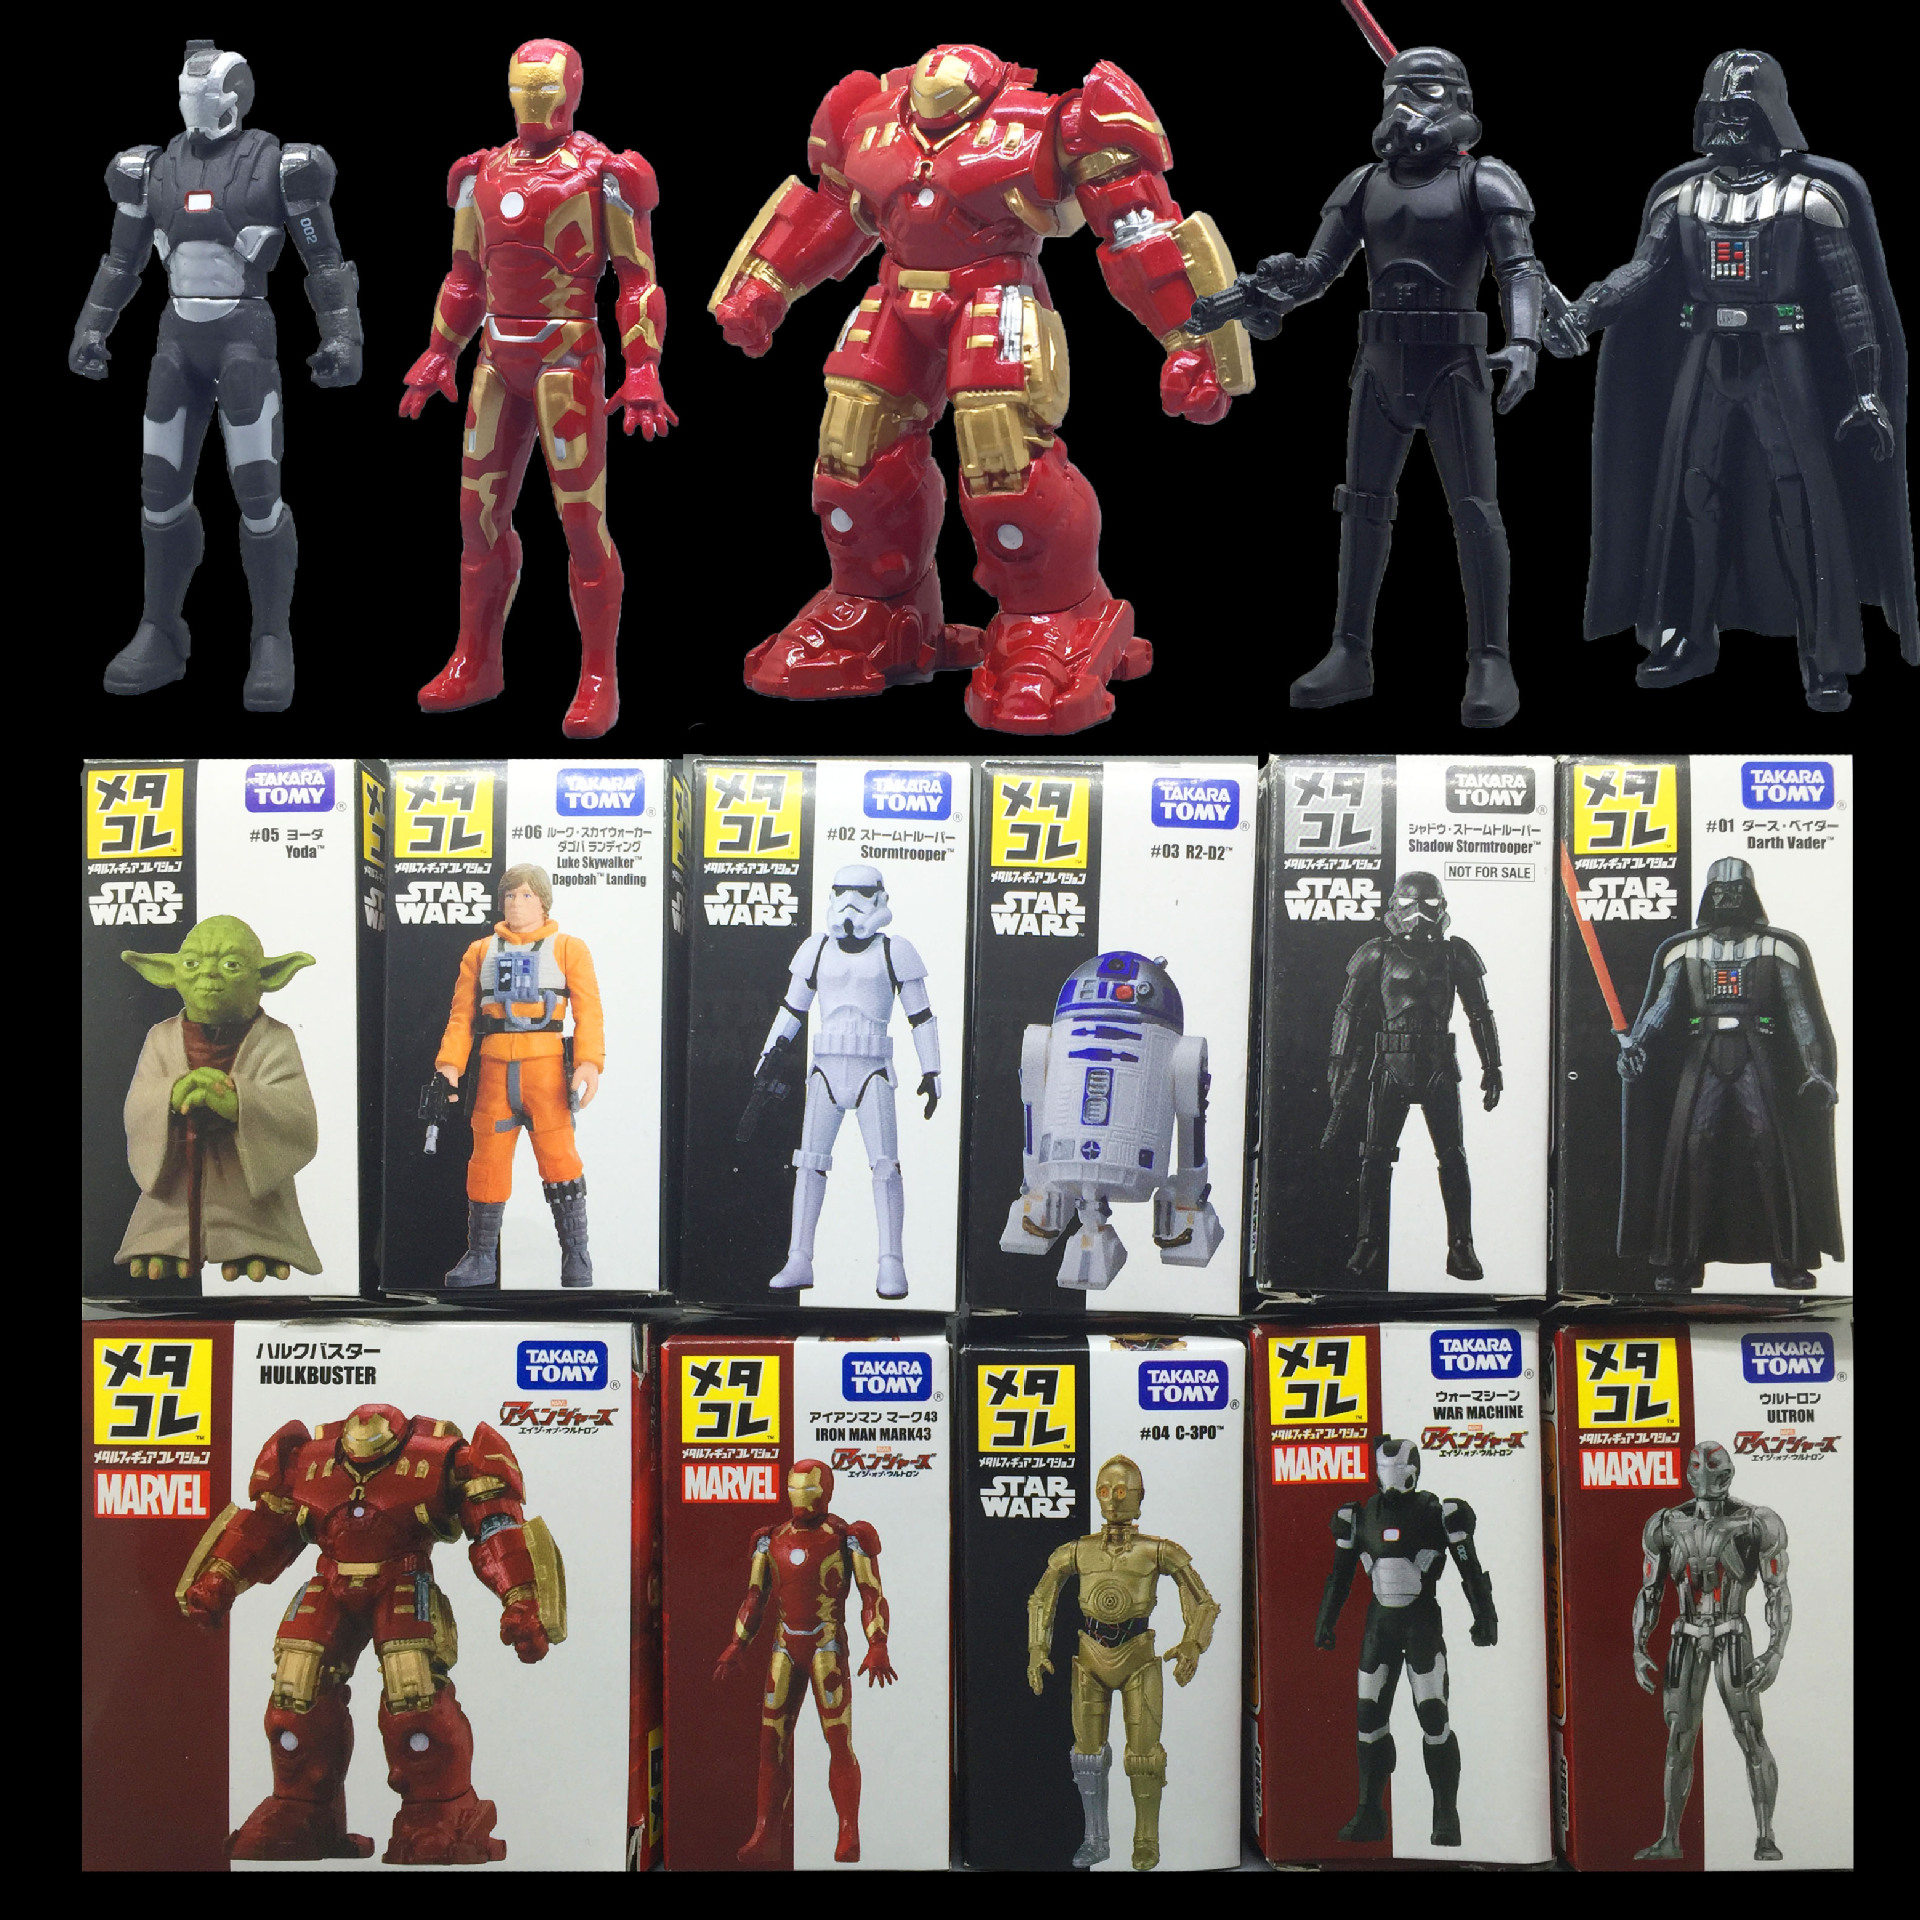 takara-tomy-star-ware-font-b-marvel-b-font-figure-iron-mon-metal-toy-model-kids-toys-collection-gift